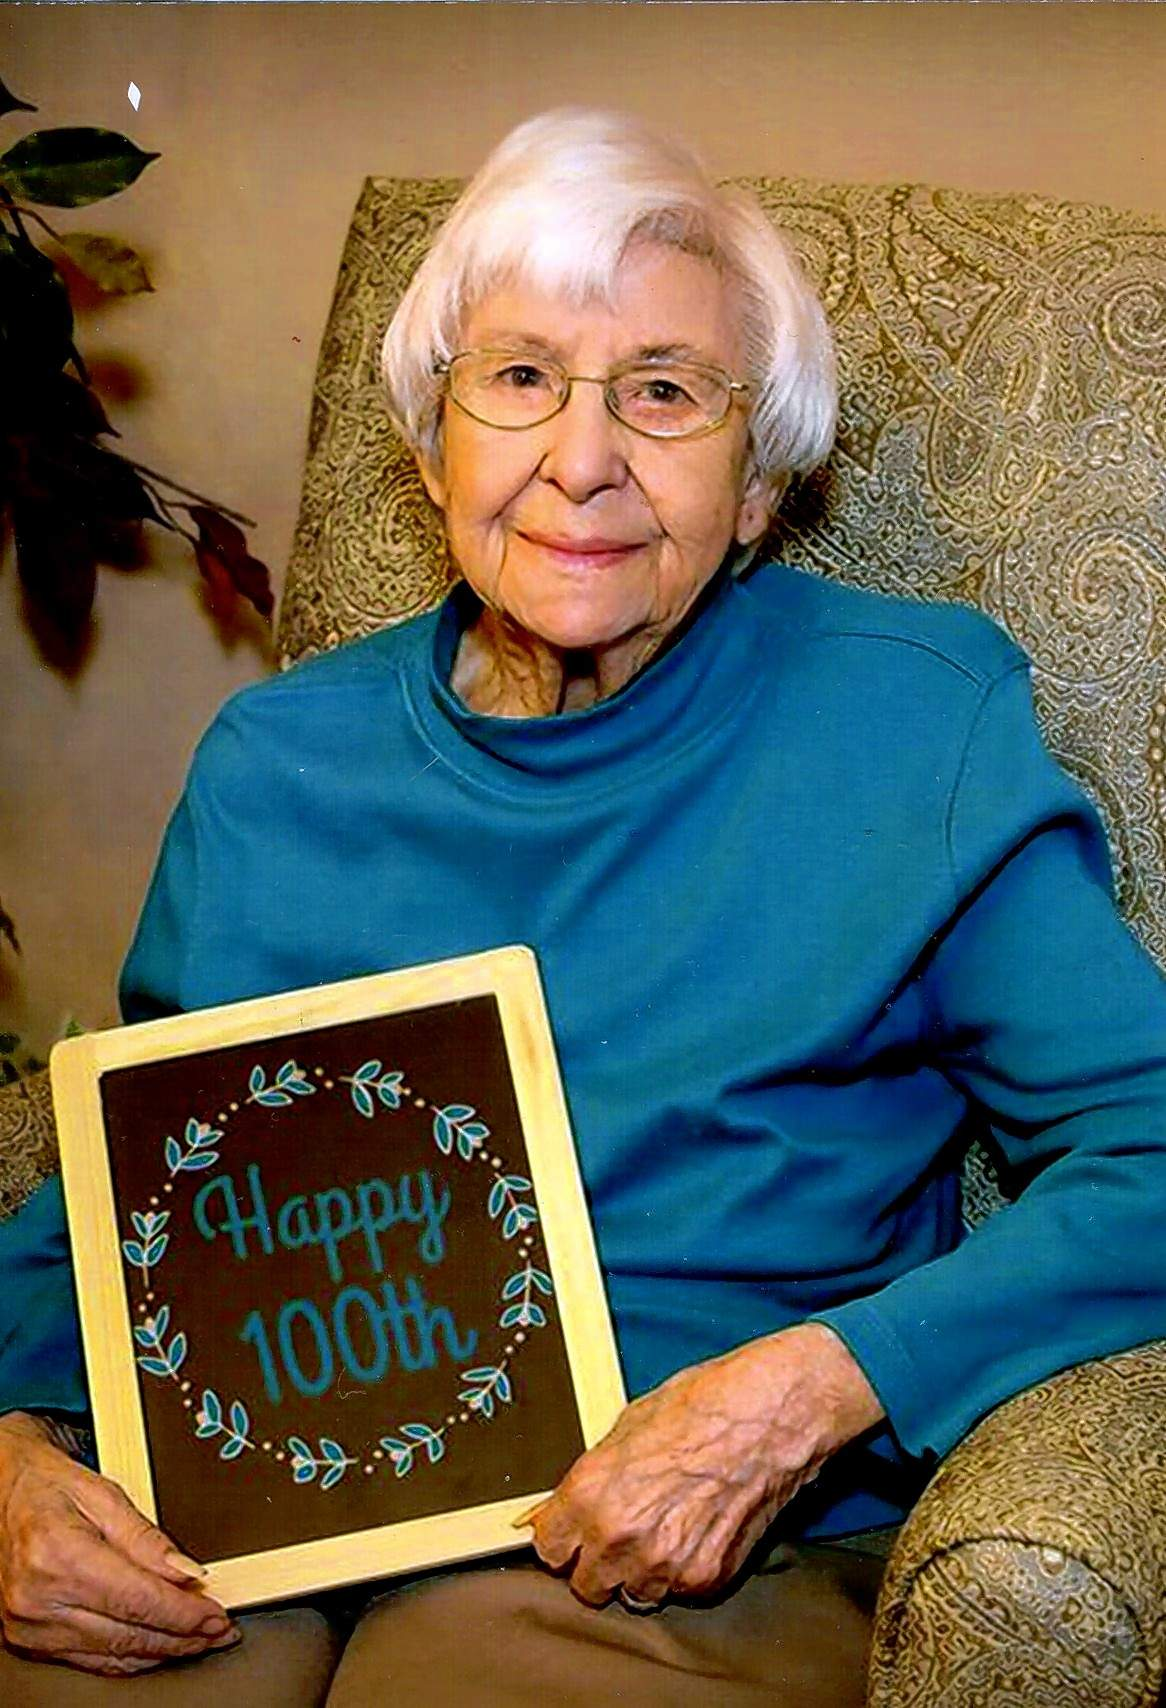 Maxine Walters celebrated her 100th birthday with family over the Memorial Day weekend.